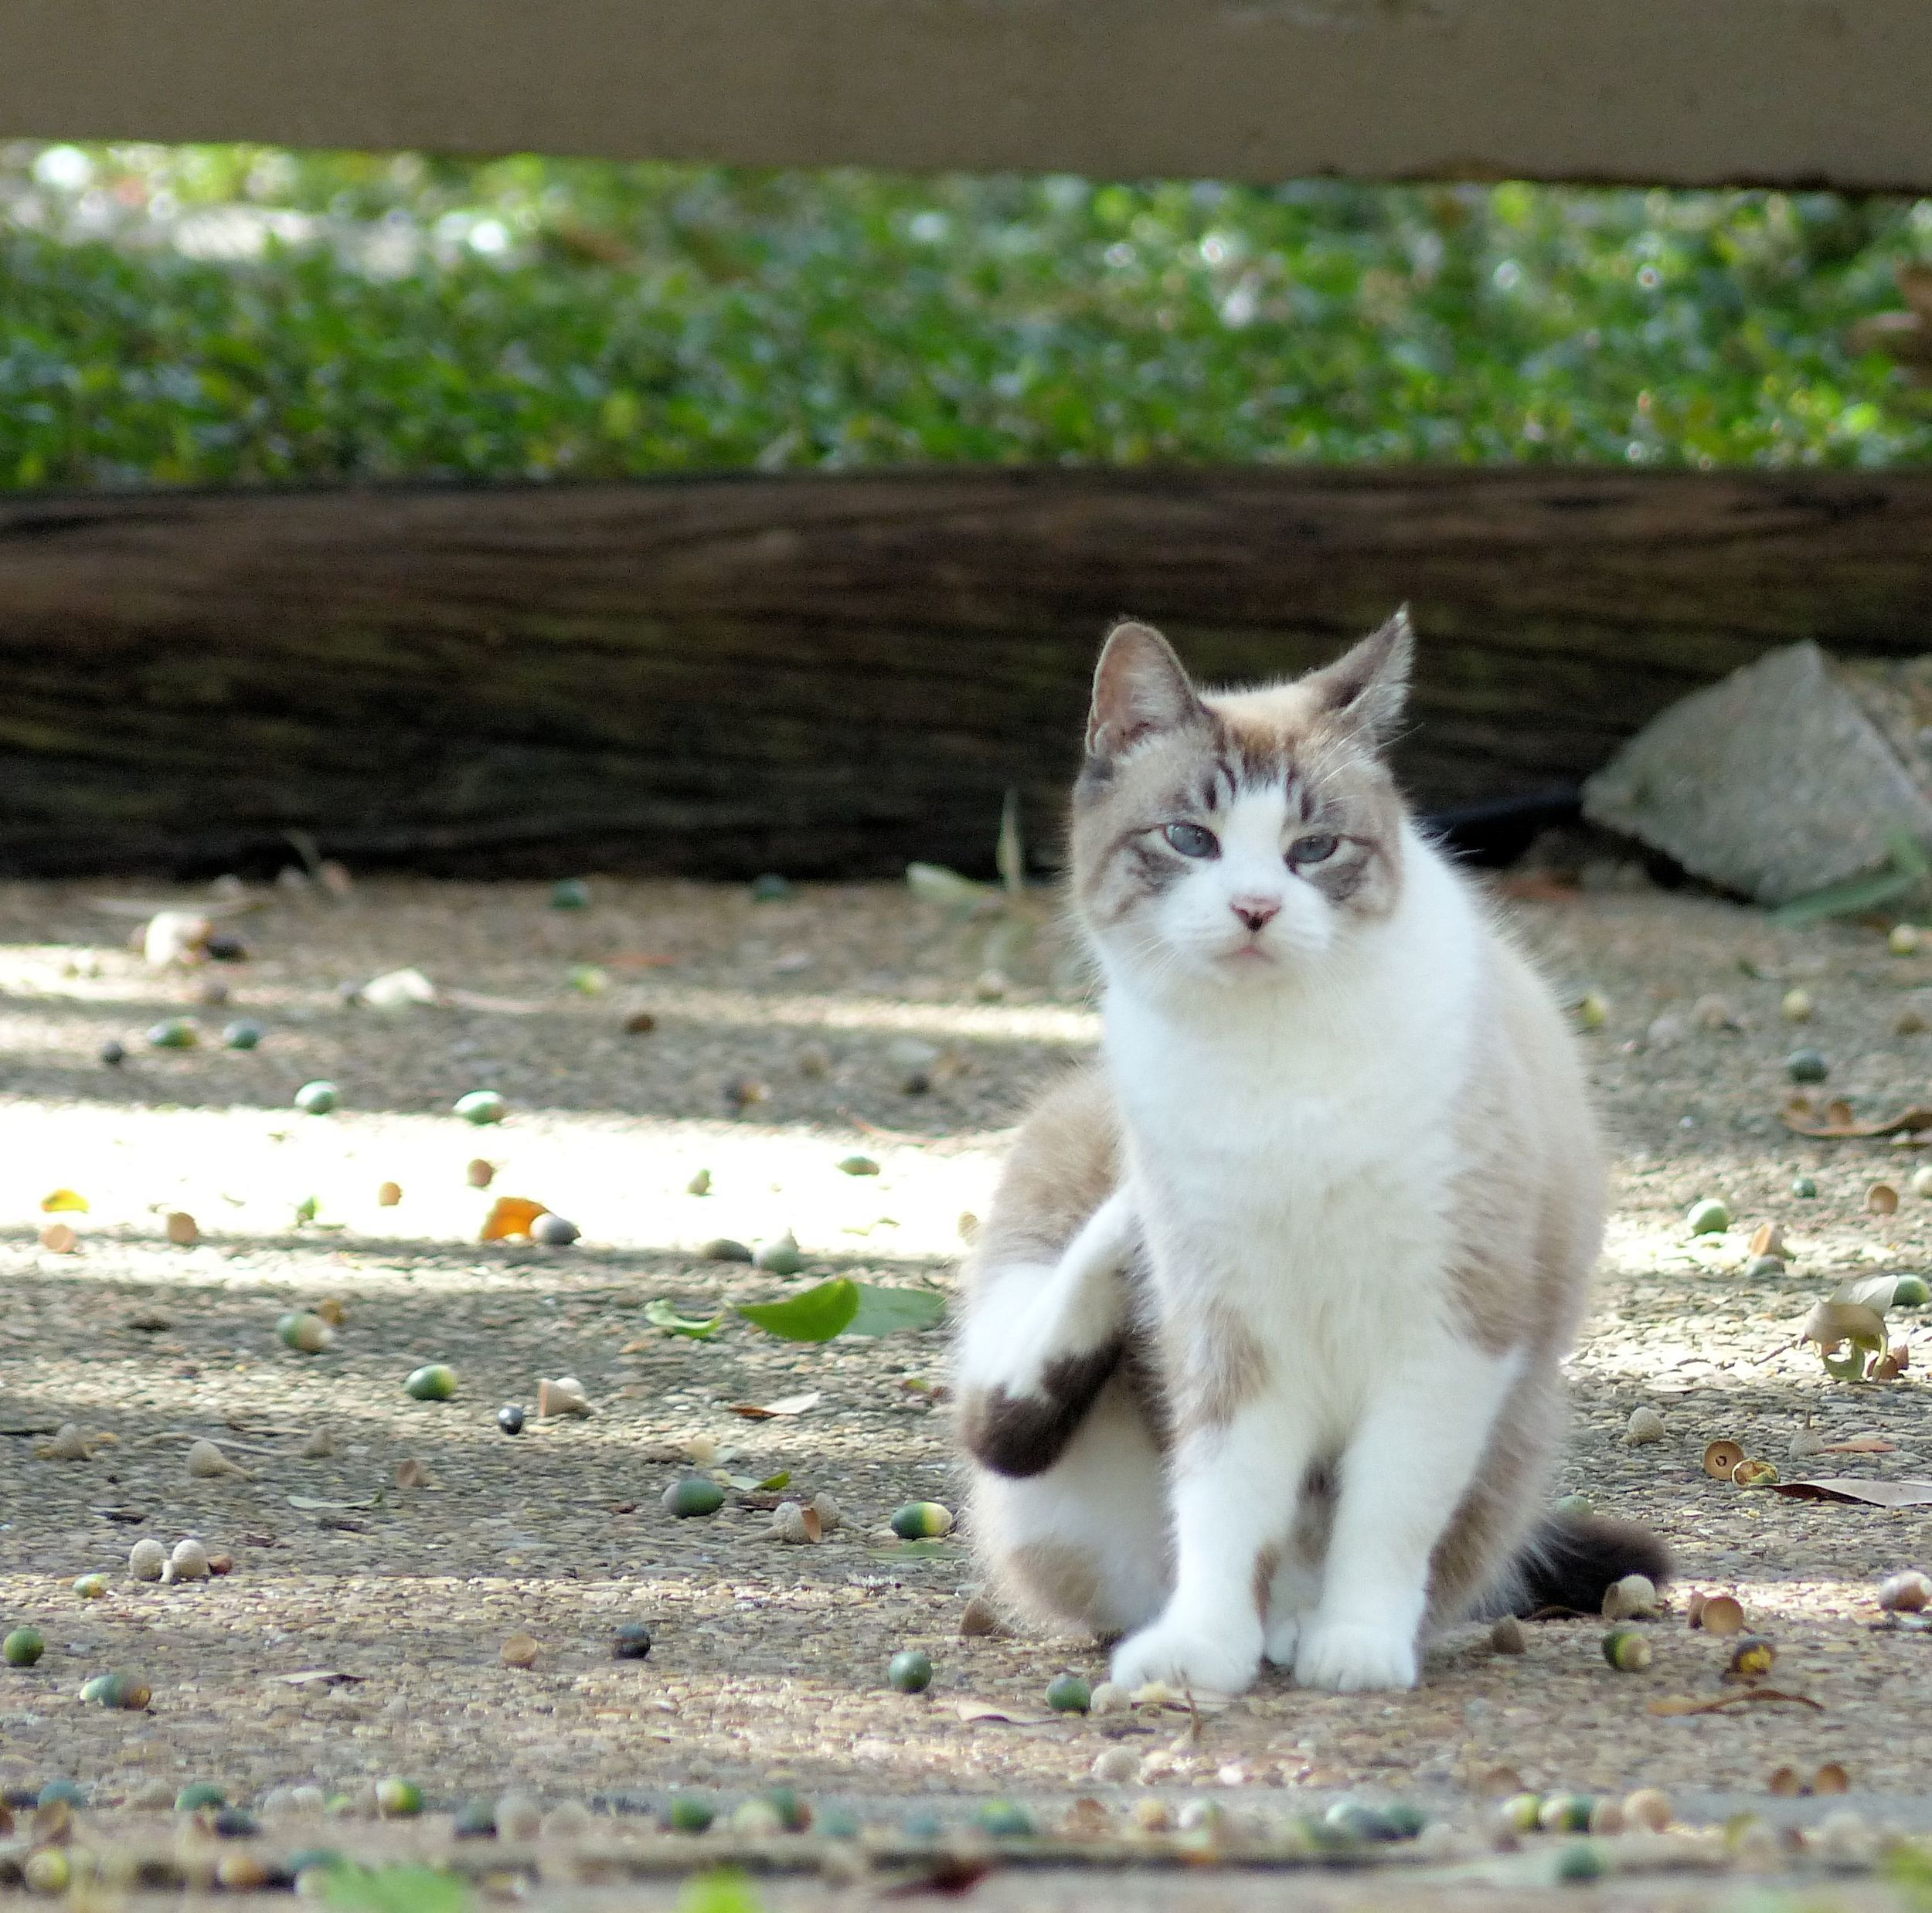 A white cat with brown trim